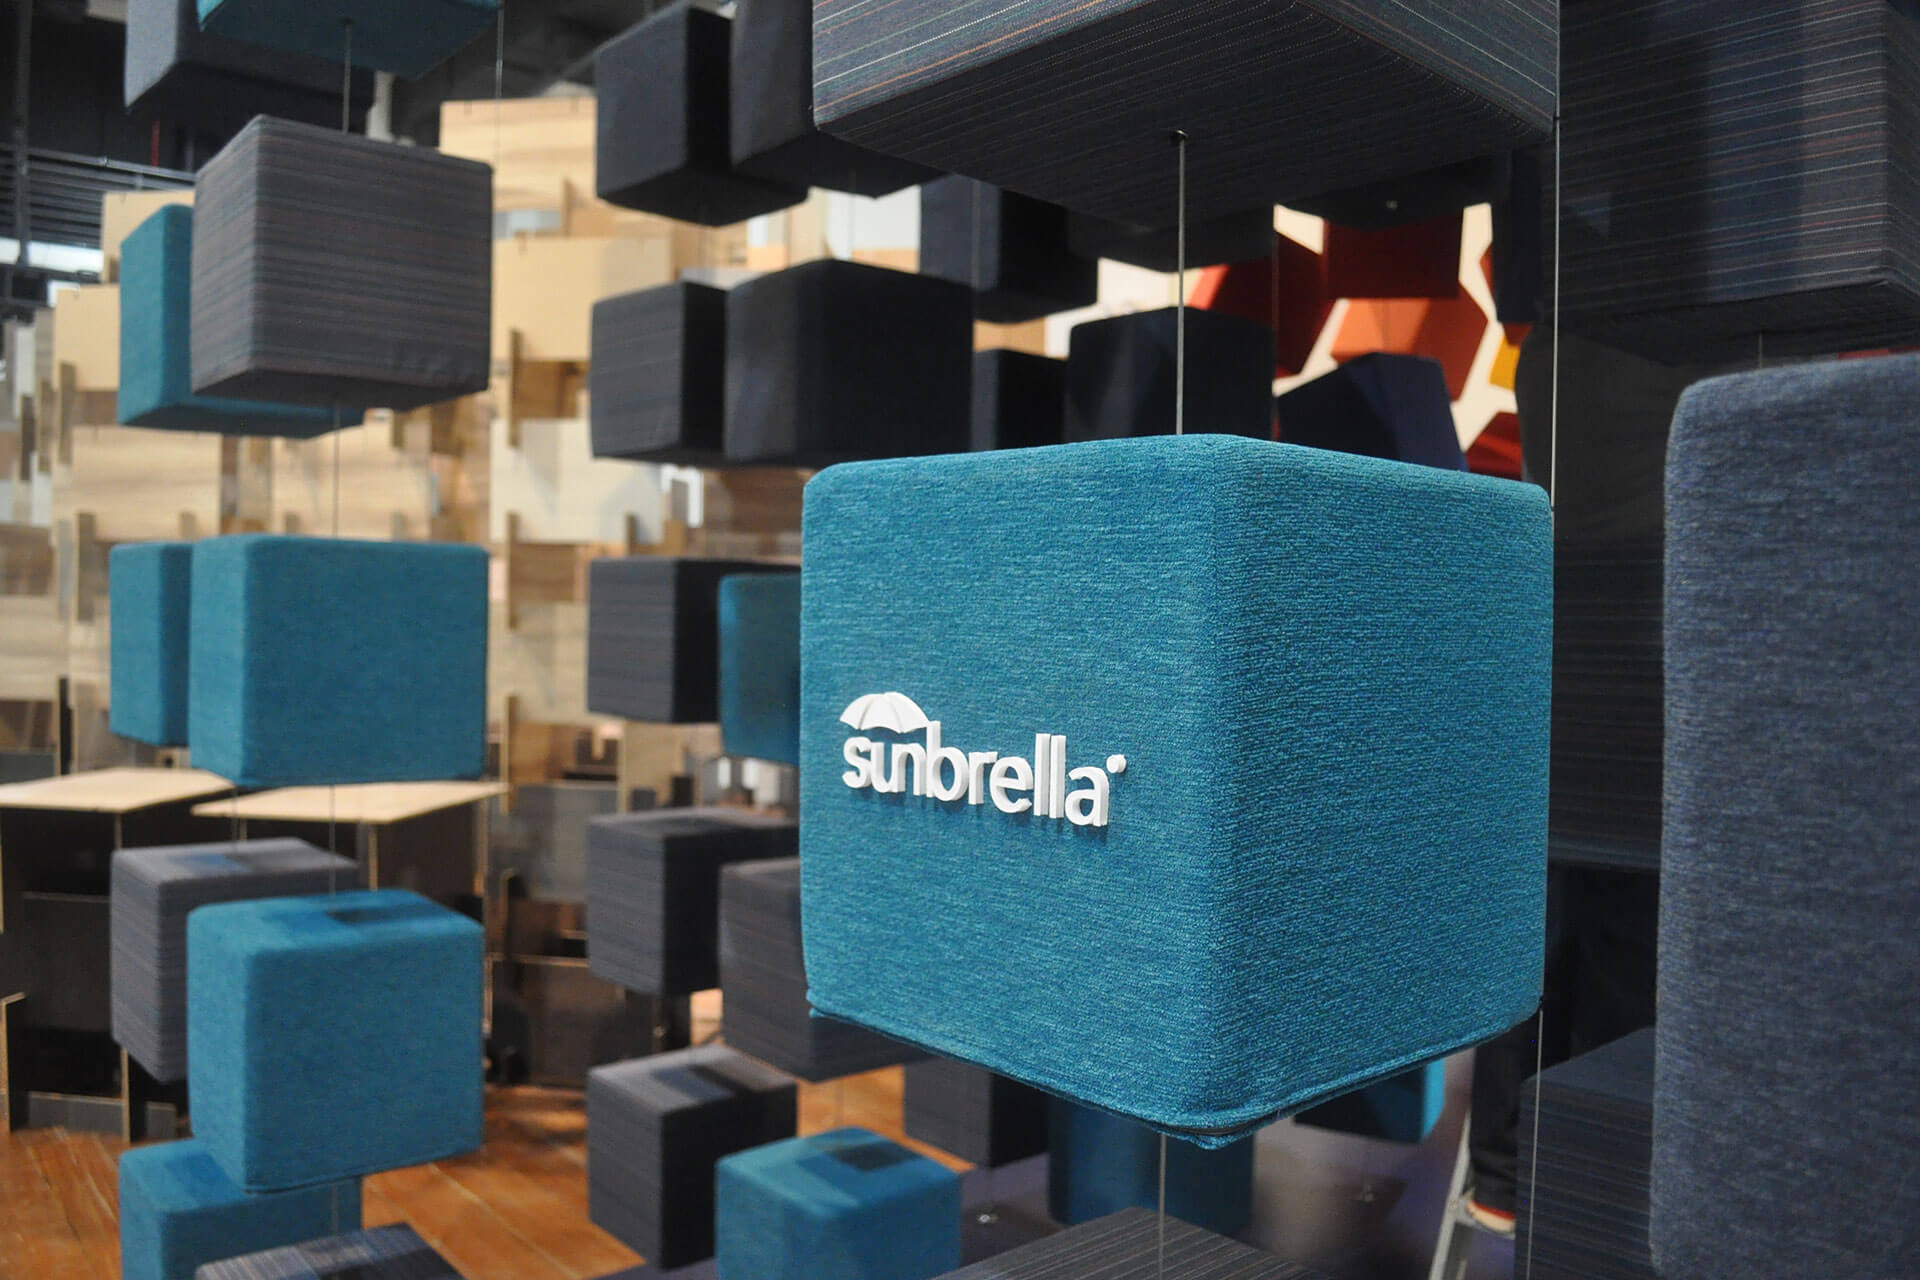 Close up of teal colored cubes upholstered in Sunbrella fabrics at the Singapore InDesign show.